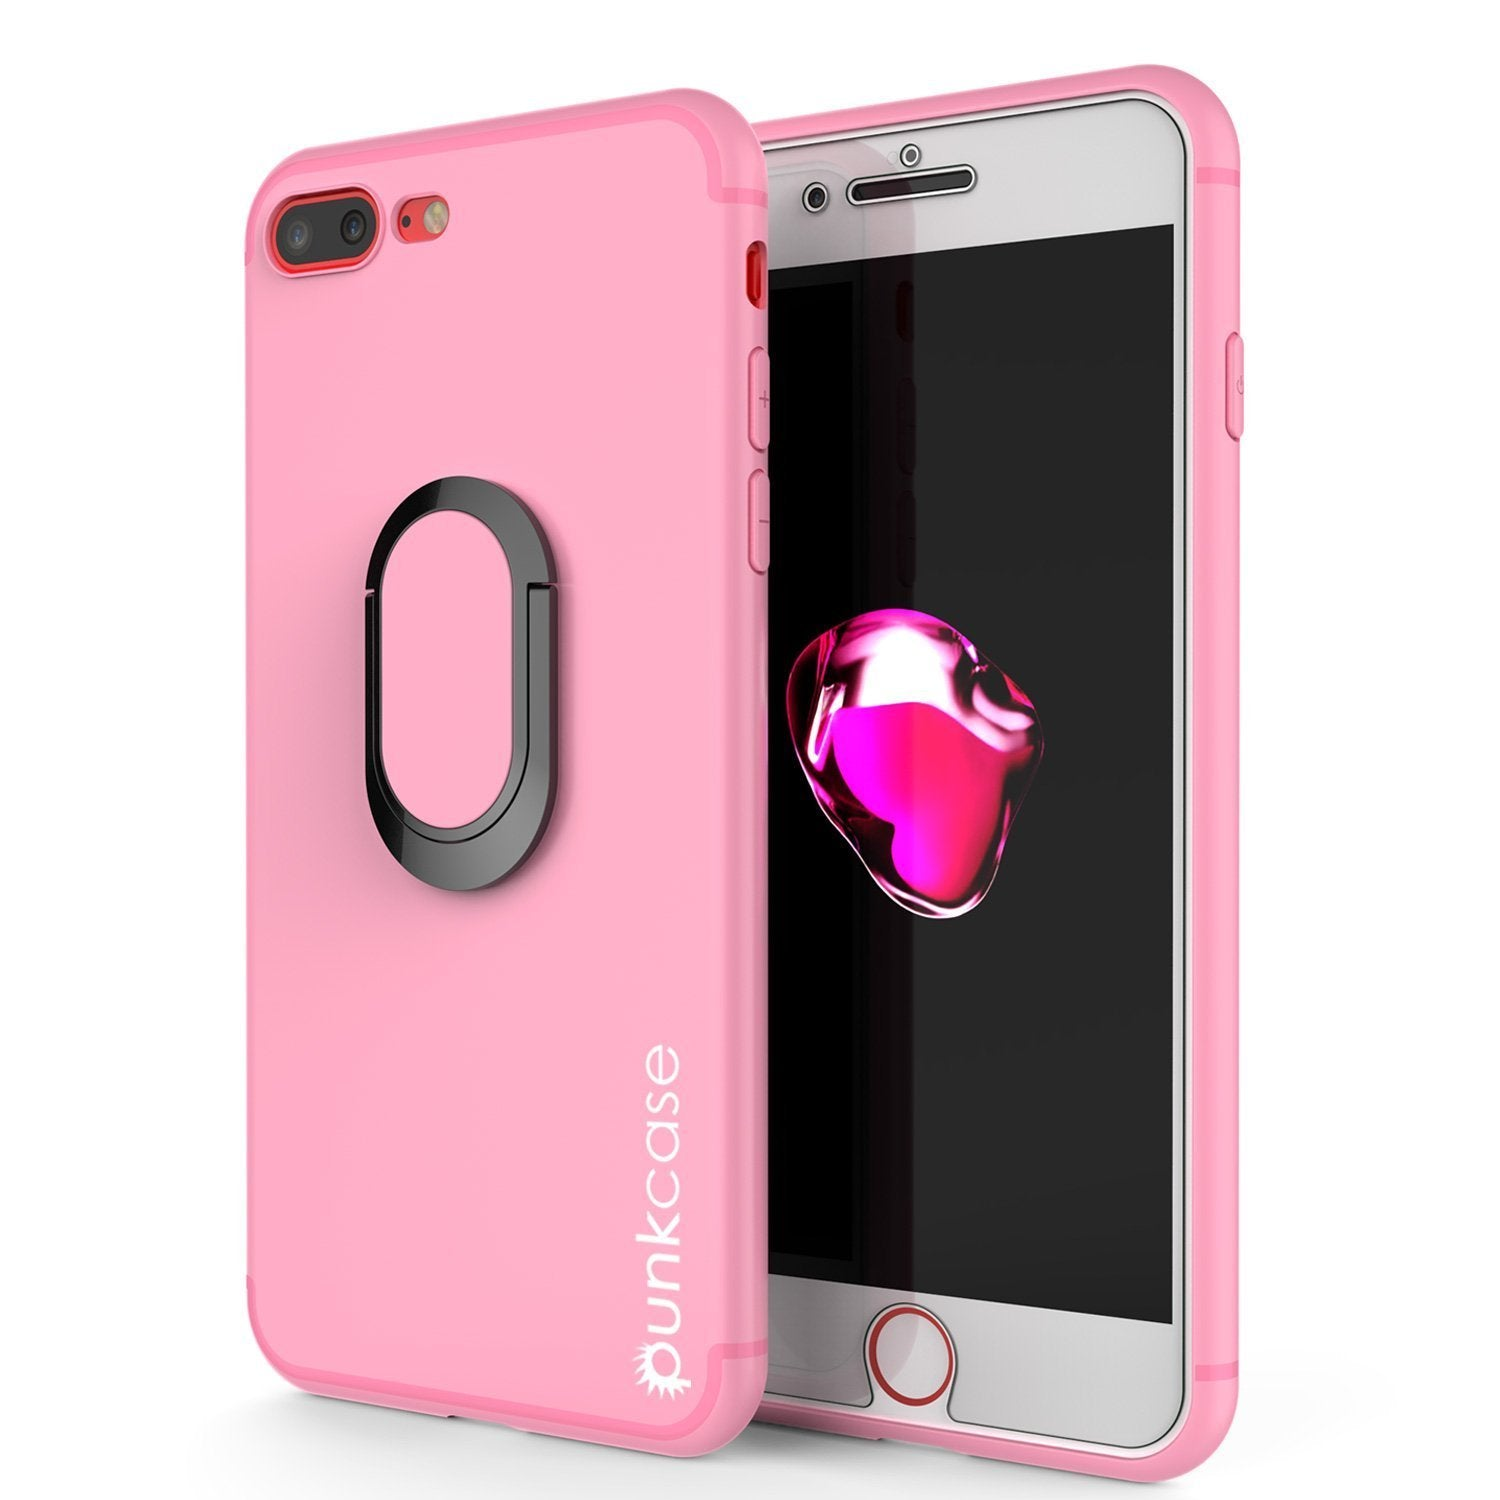 iPhone 8 PLUS Case, Punkcase Magnetix Protective TPU Cover W/ Kickstand, Tempered Glass Screen Protector [Pink]